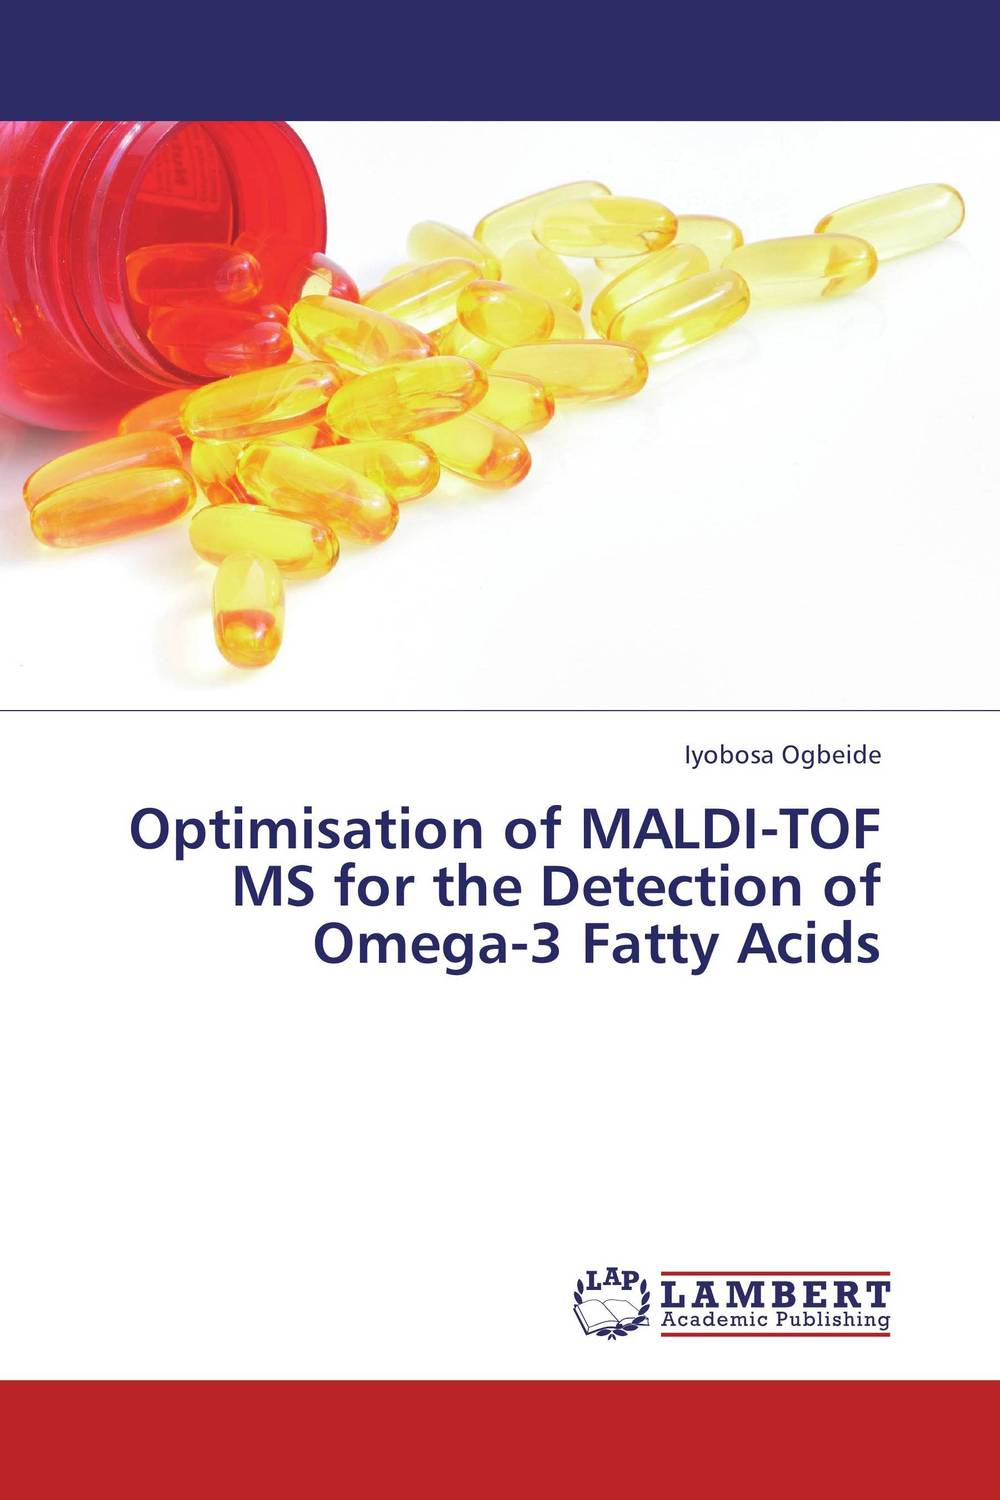 Optimisation of MALDI-TOF MS for the Detection of Omega-3 Fatty Acids kirkland signature natural fish oil concentrate with omega 3 fatty acids 400 softgels 1000mg pack of 3